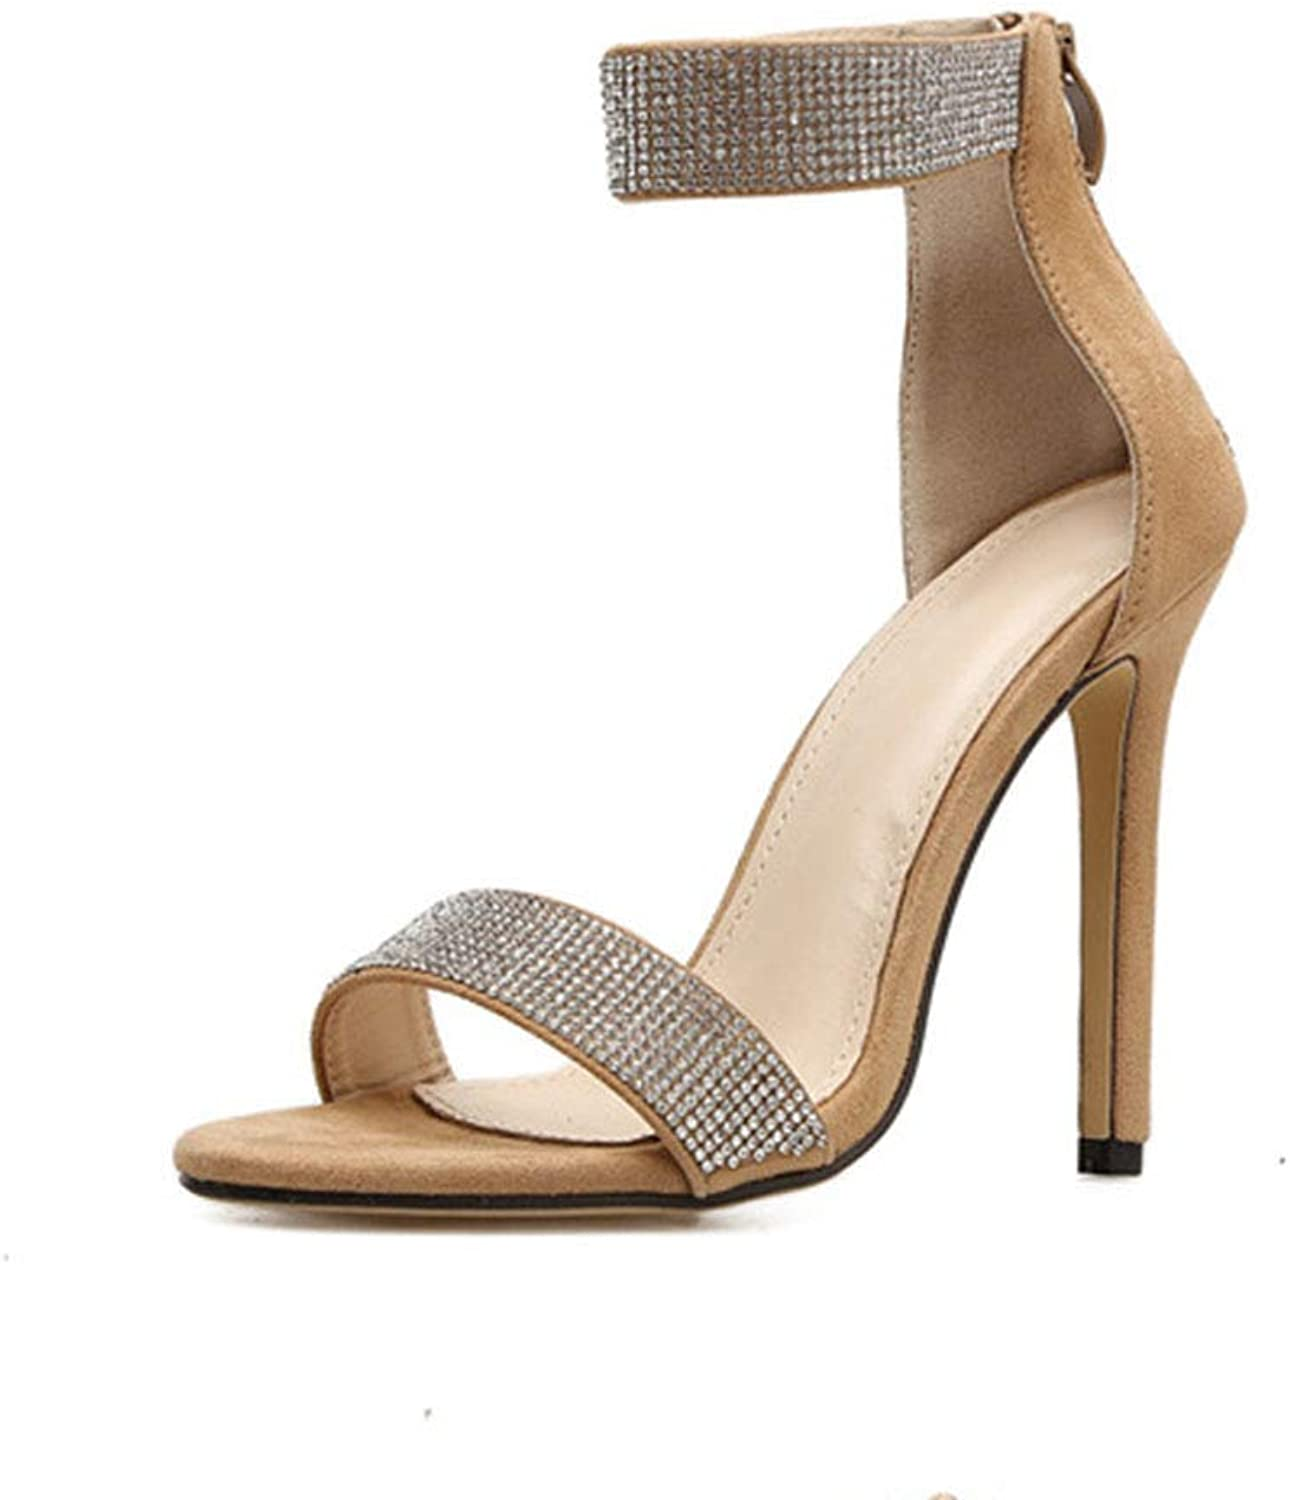 XDLEX Women Glittery Rhinestone Strappy Heeled Sandals Stiletto Suede Ankle Crystal Strap One Strap Pumps Open Toe Wrap-Around Strap Cutout Jewel shoes